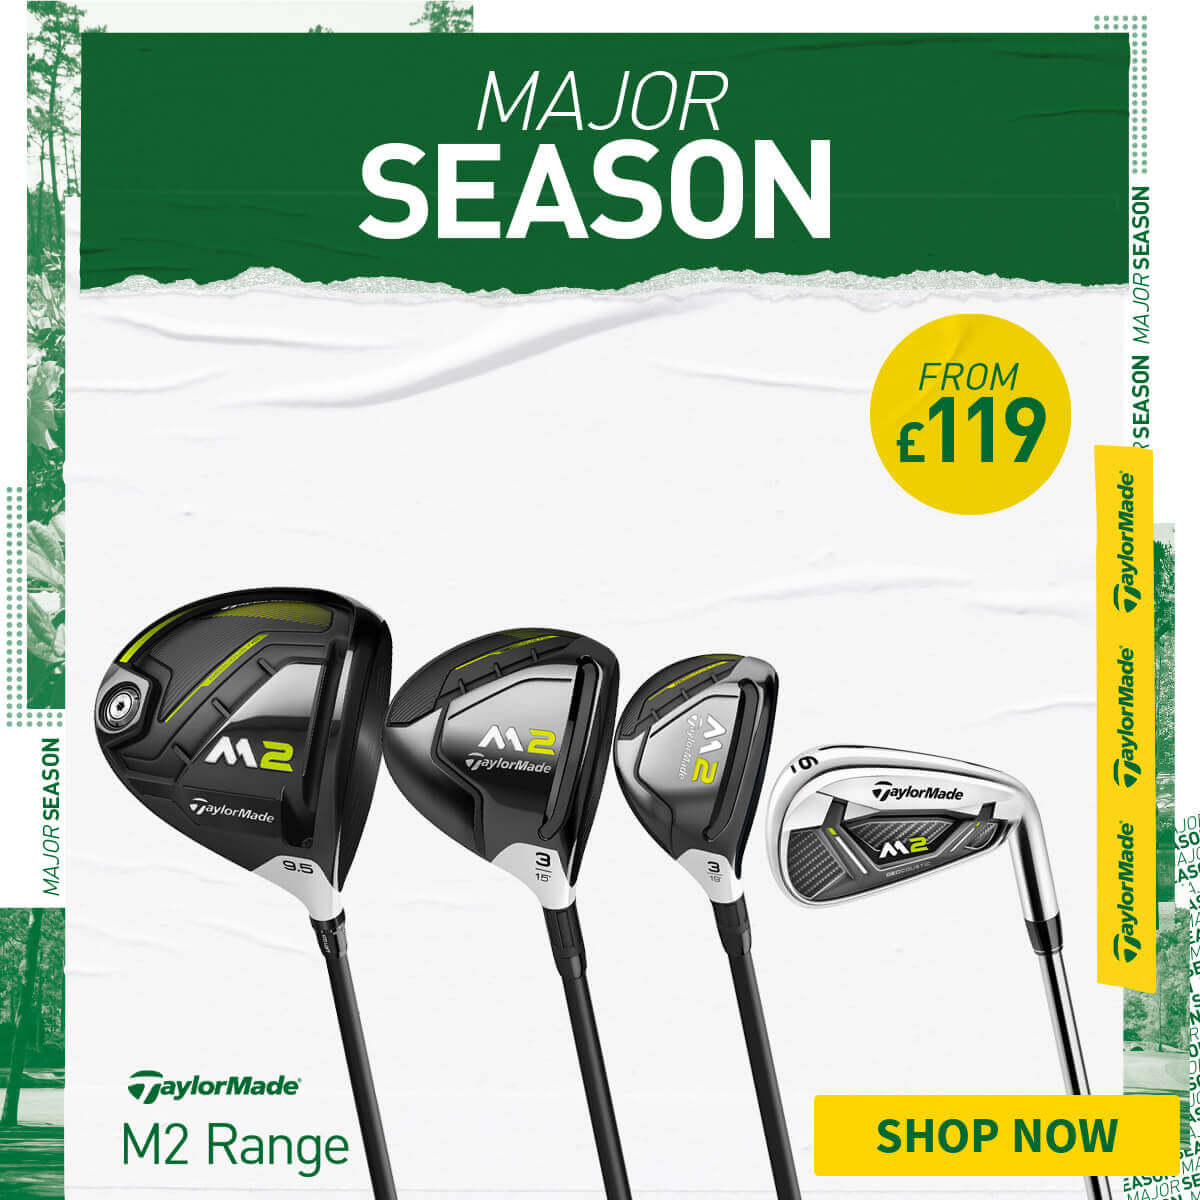 MAJOR SEASON FFERS - THE TAYLORMADE M2 RANGE